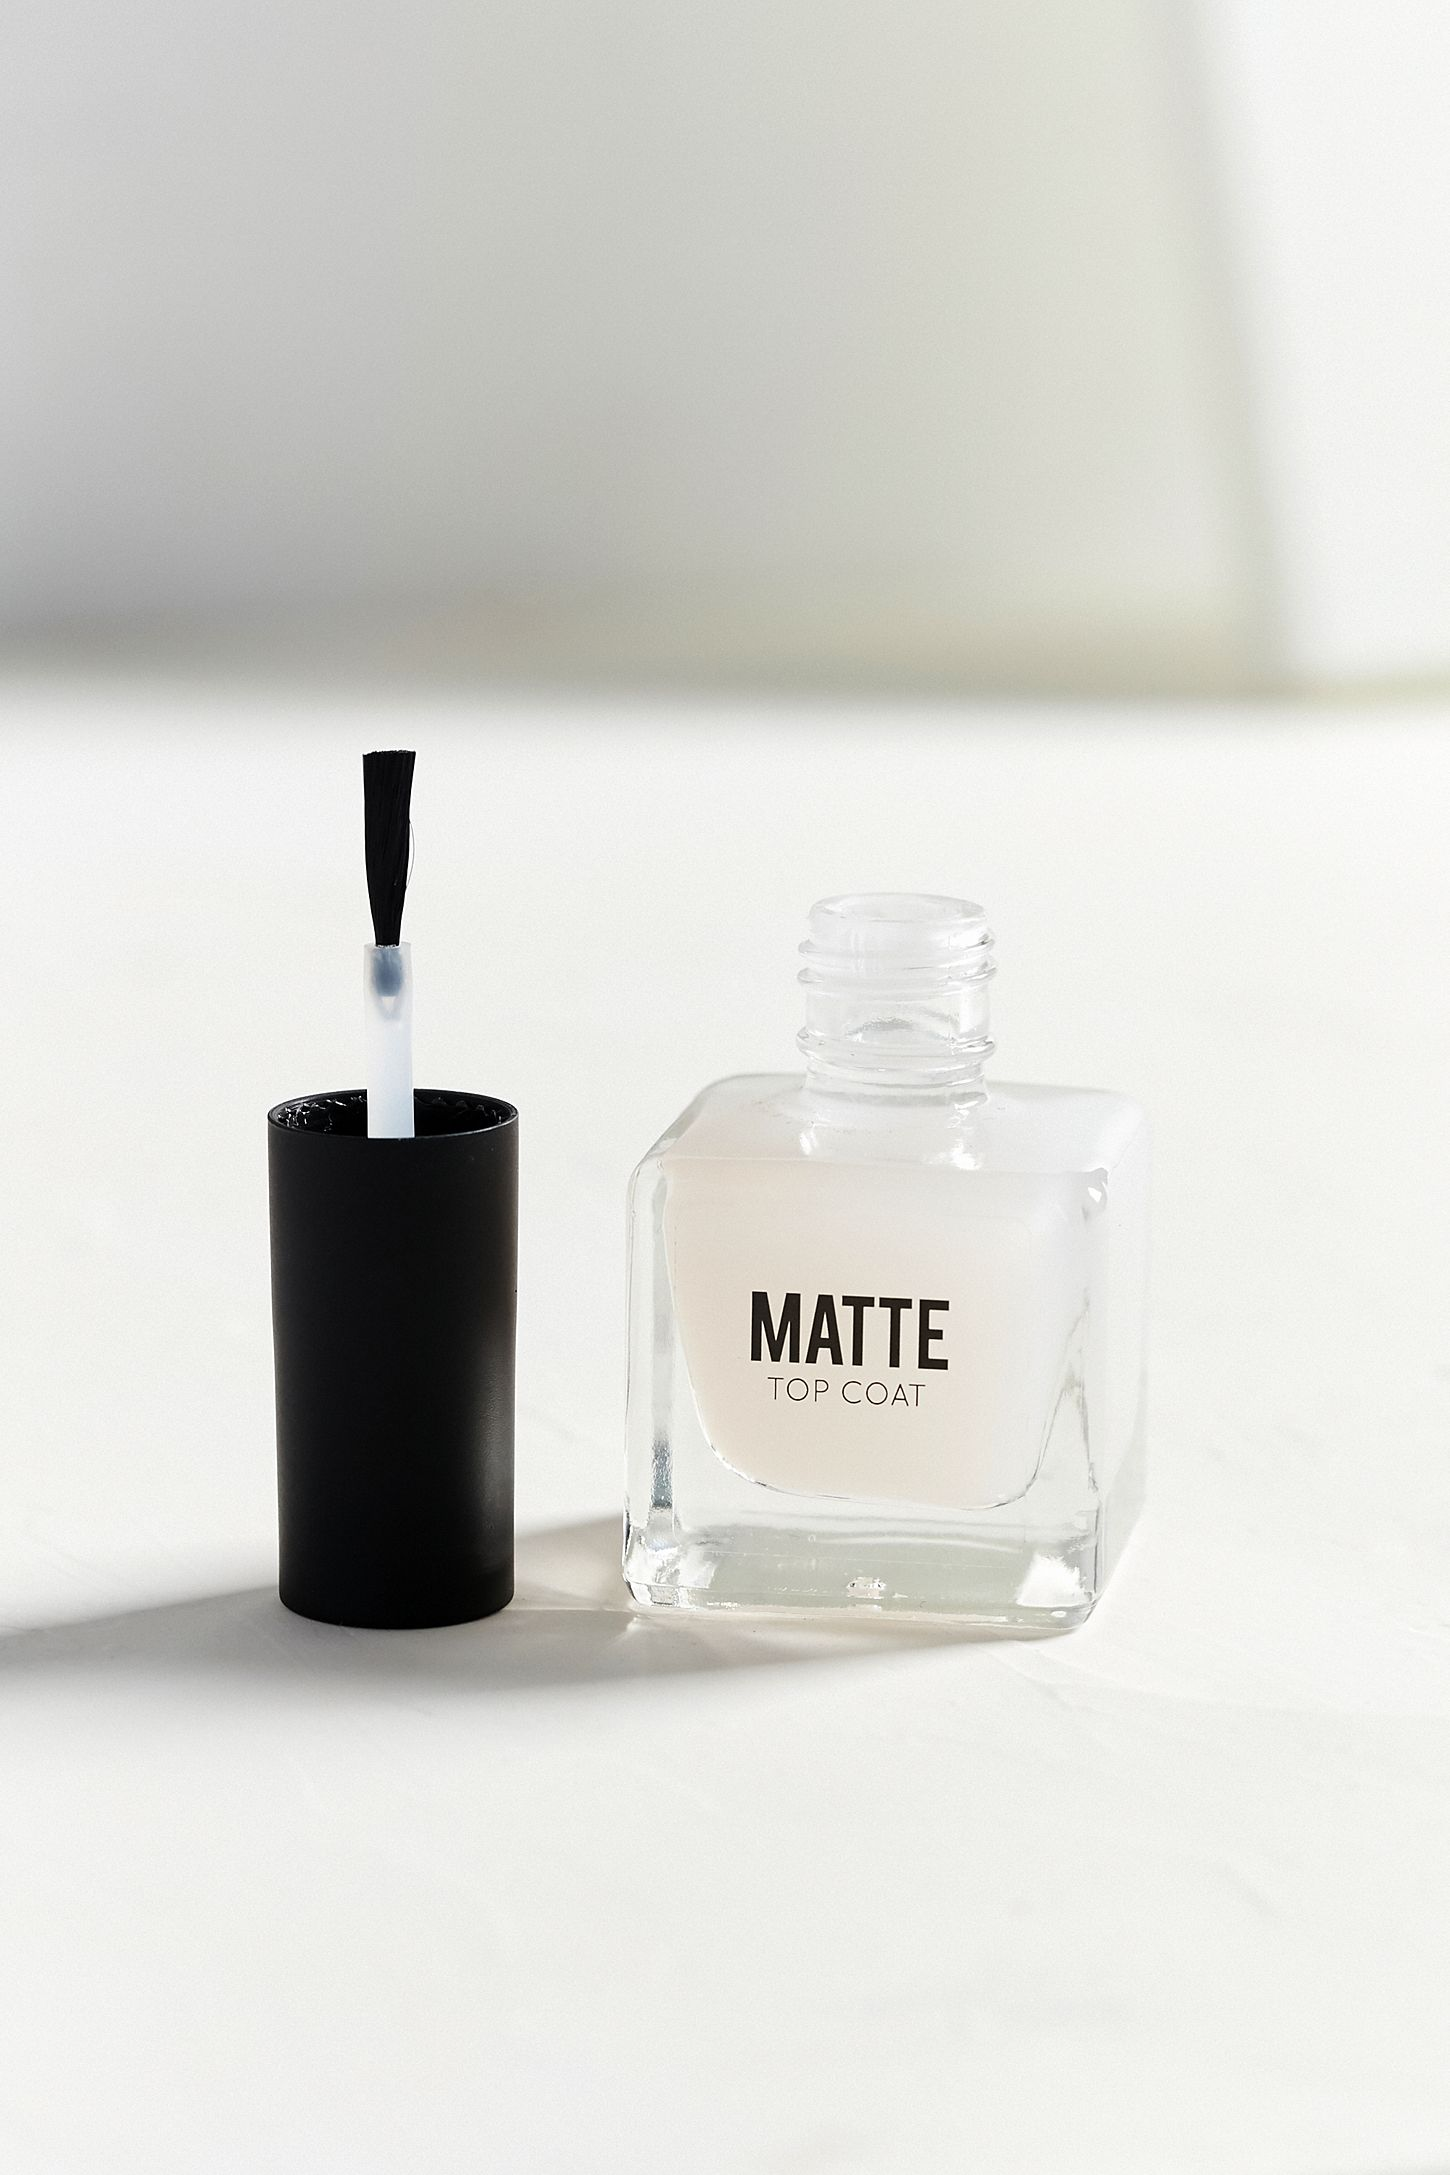 Uo Matte Top Coat Nail Polish Urban Outfitters